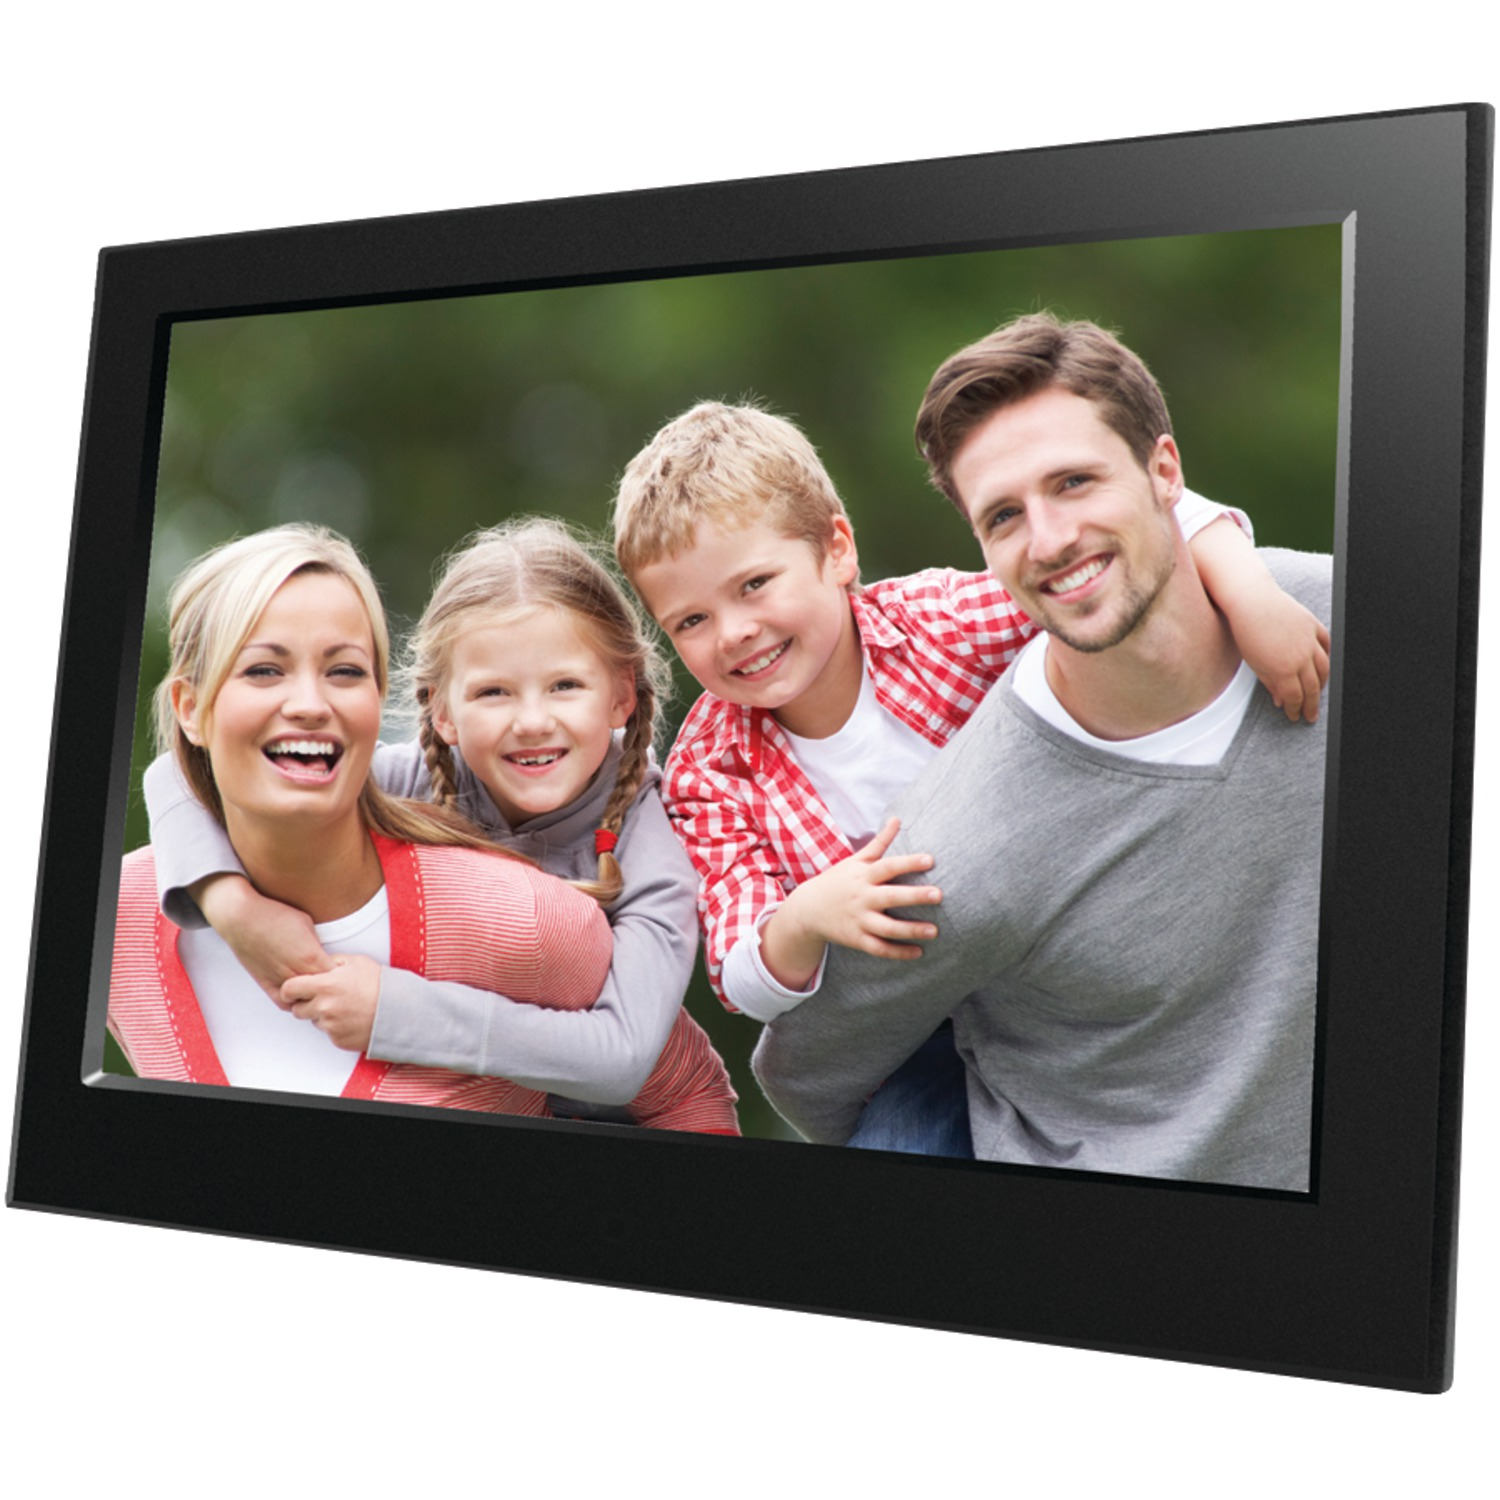 Naxa� NF-900 TFT/LED DIGITAL PHOTO FRAME (9'''')